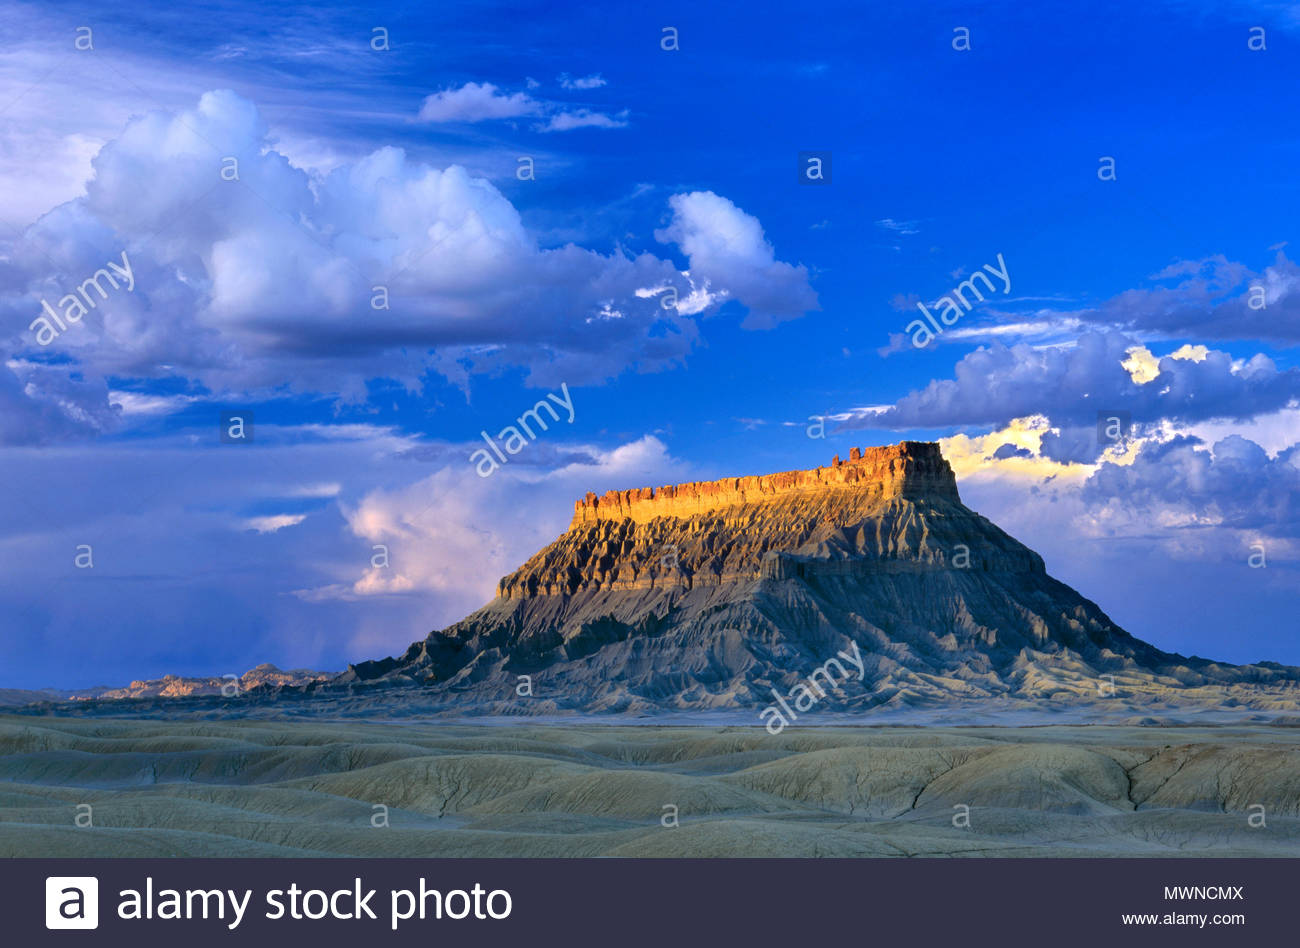 Factory Butte, BLM Lands, Wayne County, Utah - Stock Image